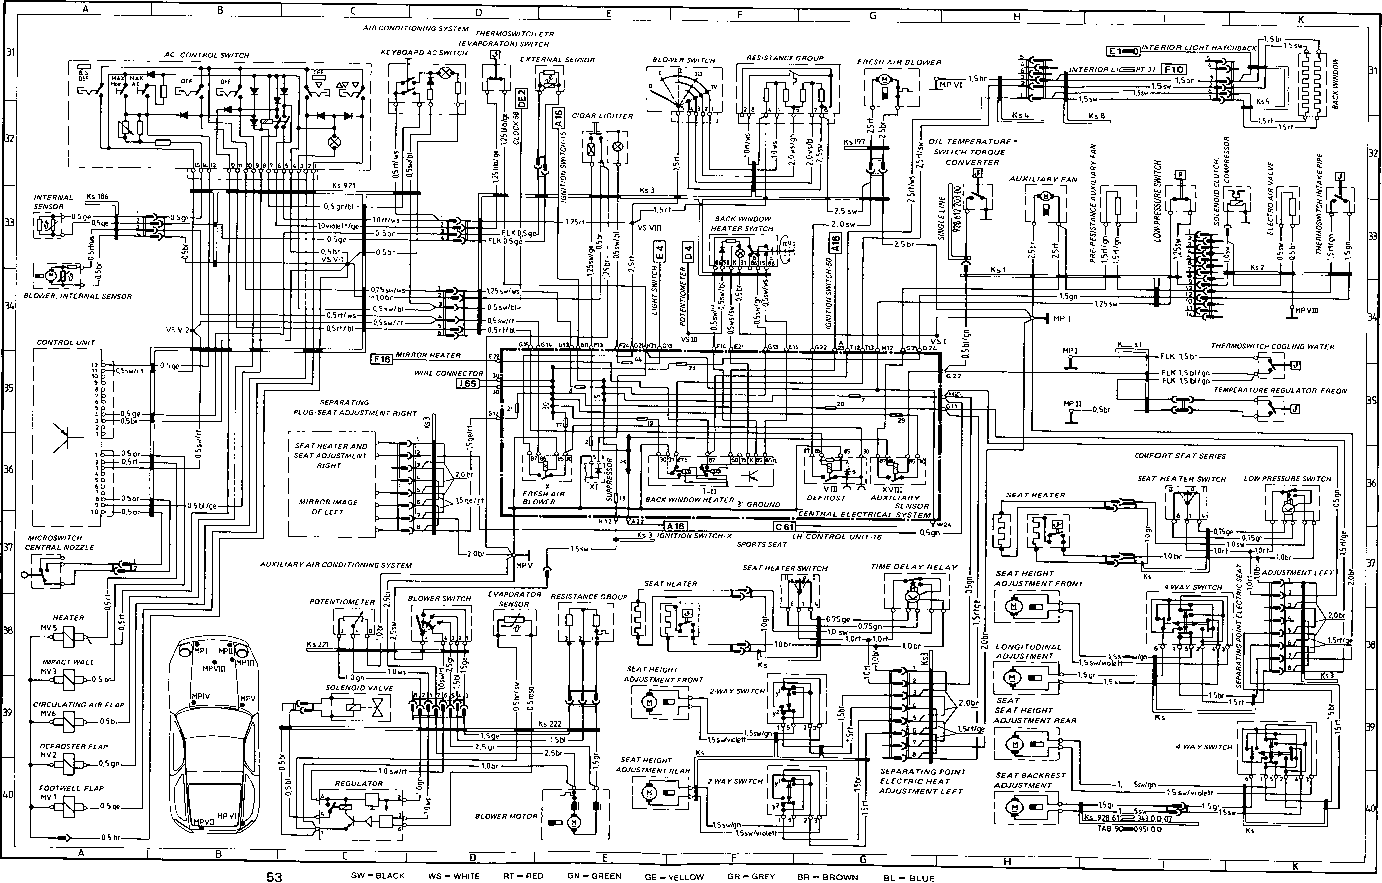 diagram for a 1980 porsche 928 trusted wiring diagram u2022 rh soulmatestyle co